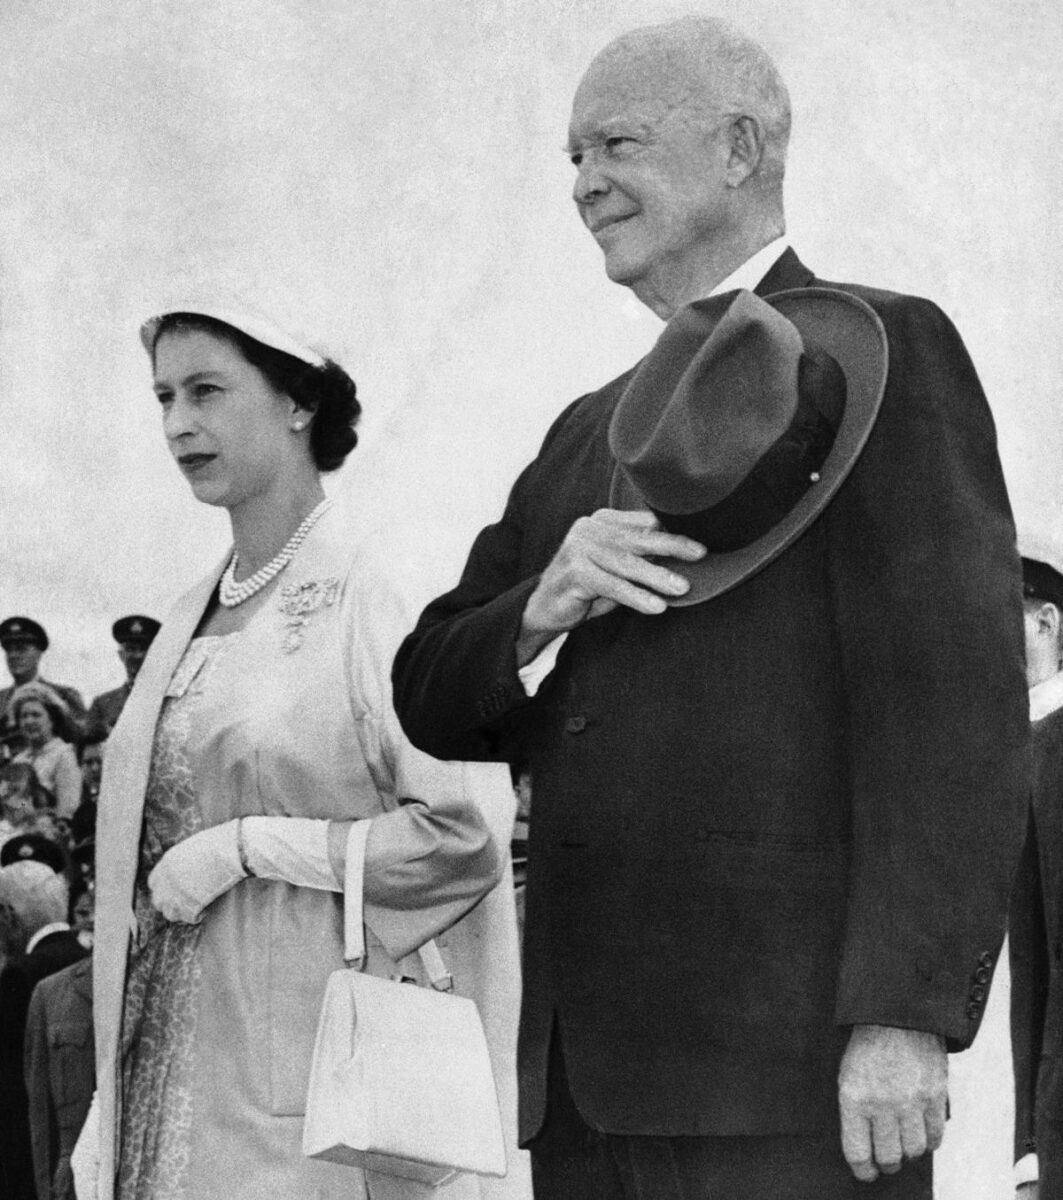 President Eisenhower and Queen Elizabeth at the Saint Lawrence Seaway dedication in 1959. (Photo: m.timegoggles.com)